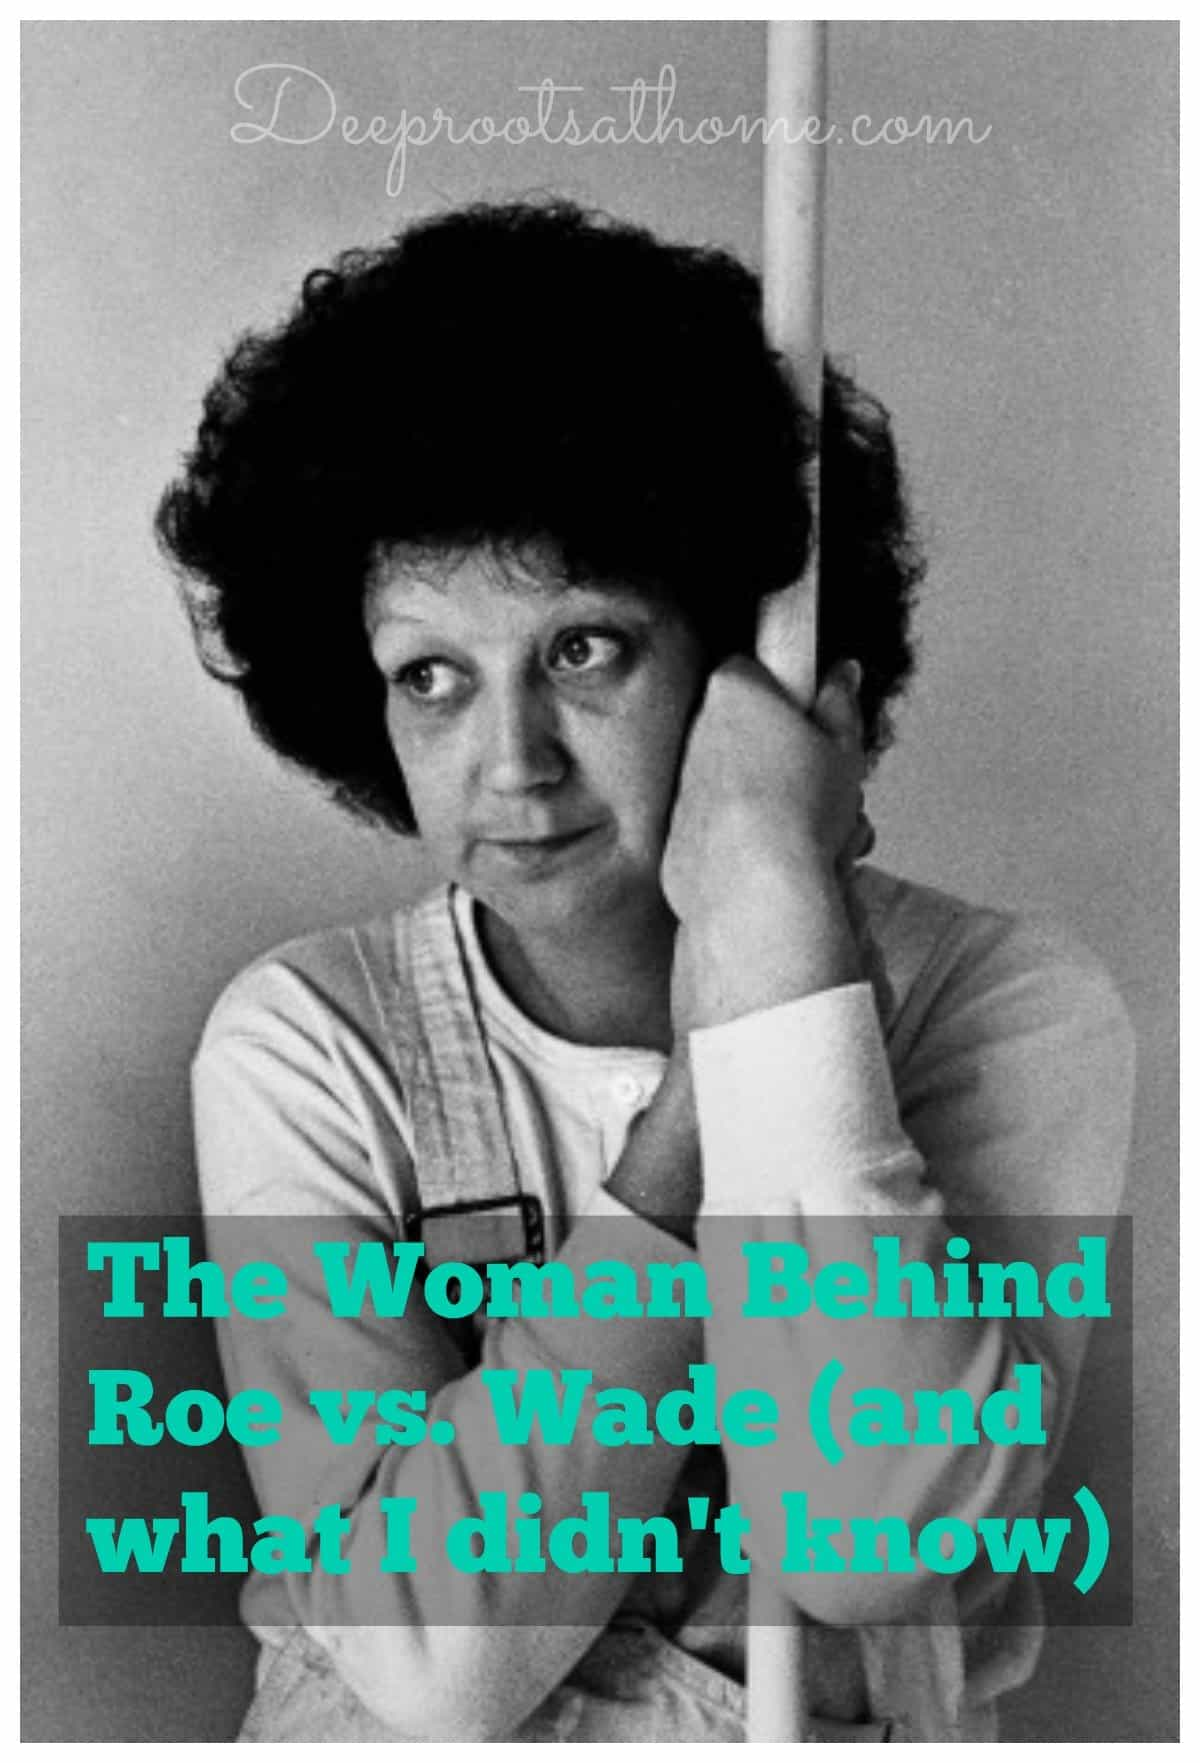 The Woman Behind Roe vs. Wade (and what I didn't know), Norma McCorvey